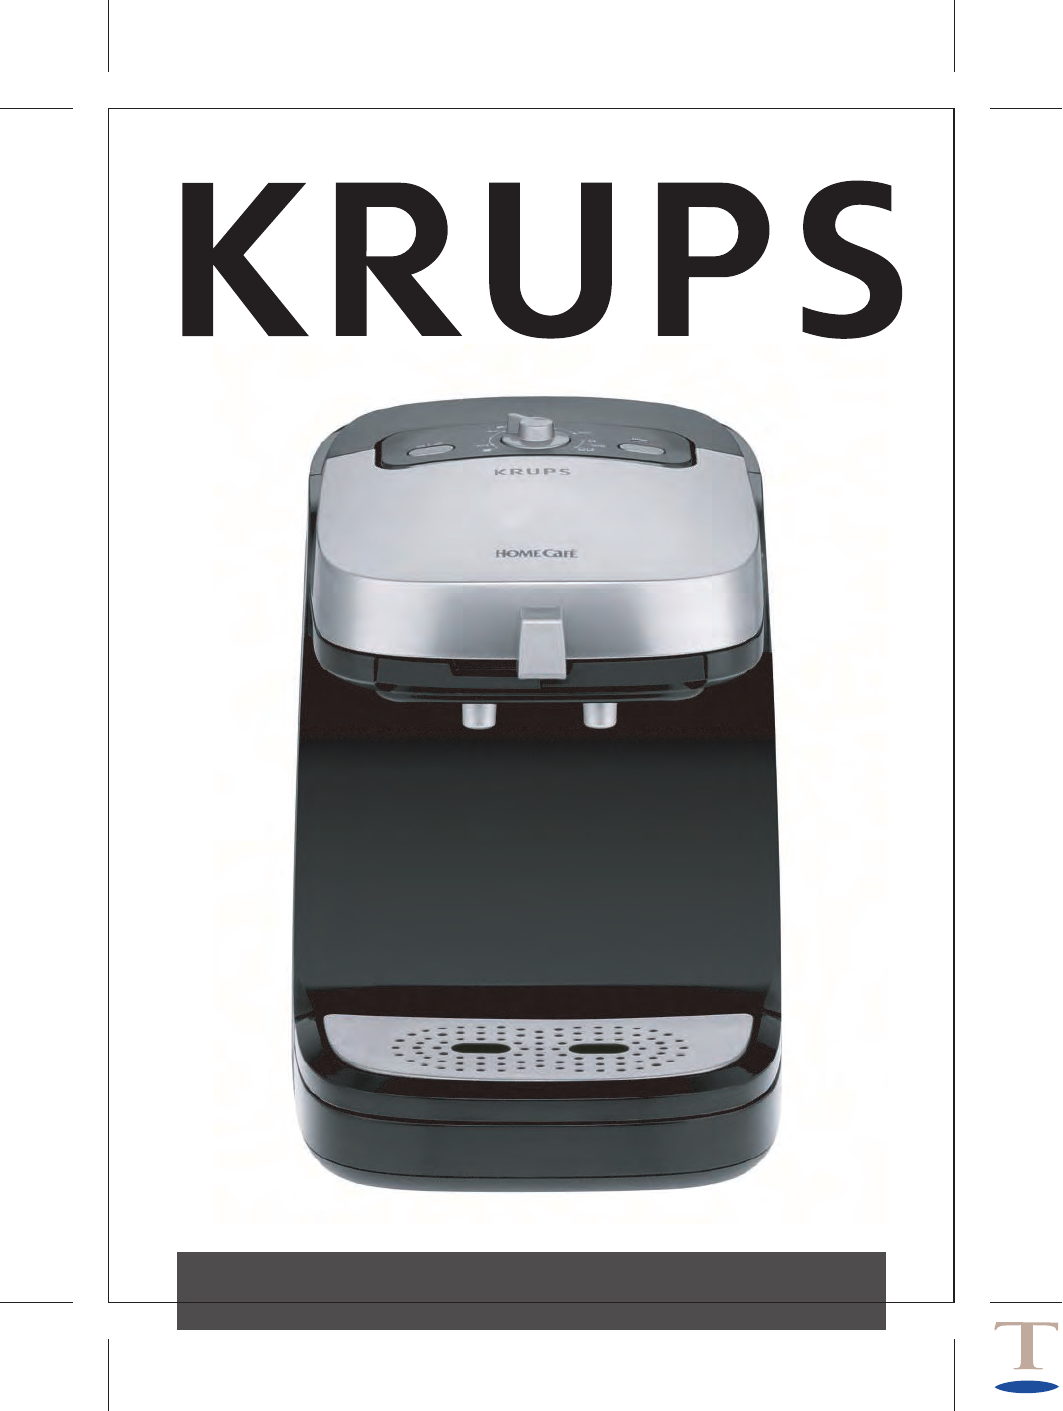 Krups Drip Coffee Maker Manual : Blog Archives - myeloadfre